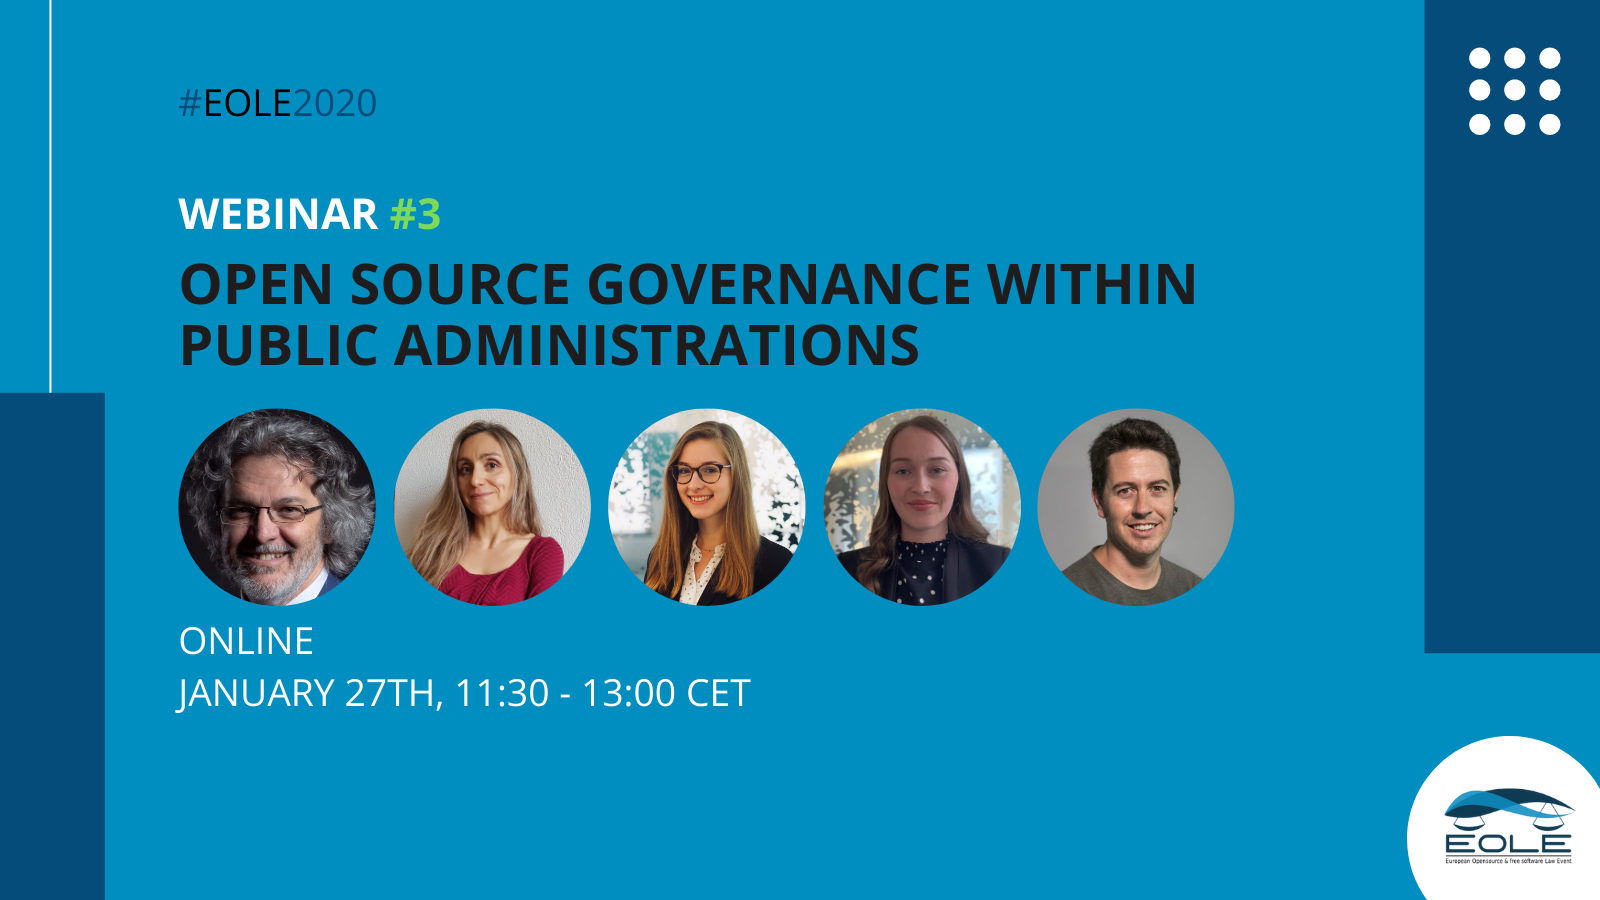 EOLE third webinar on open source governance within public administrations